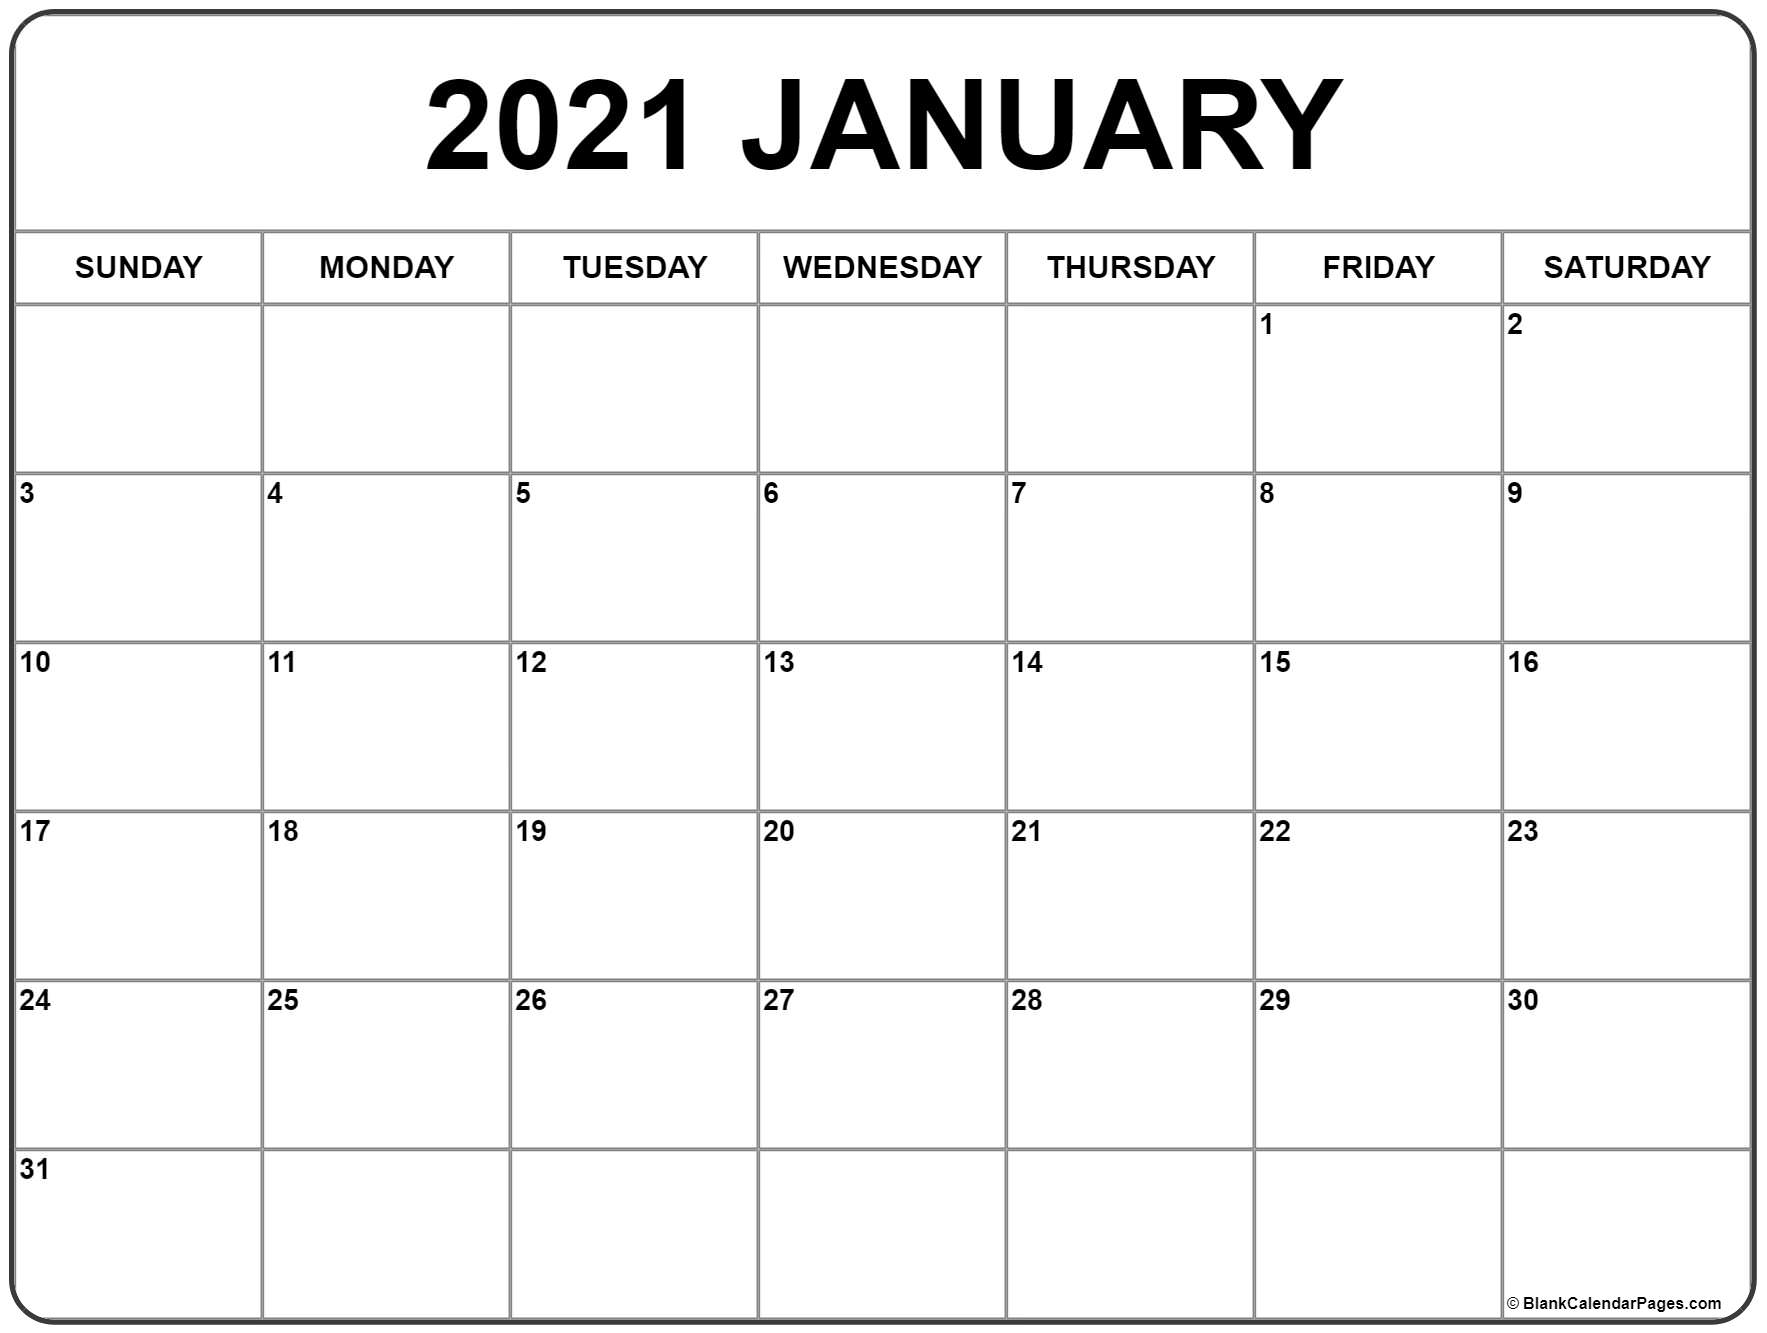 January 2021 Calendar | Free Printable Monthly Calendars